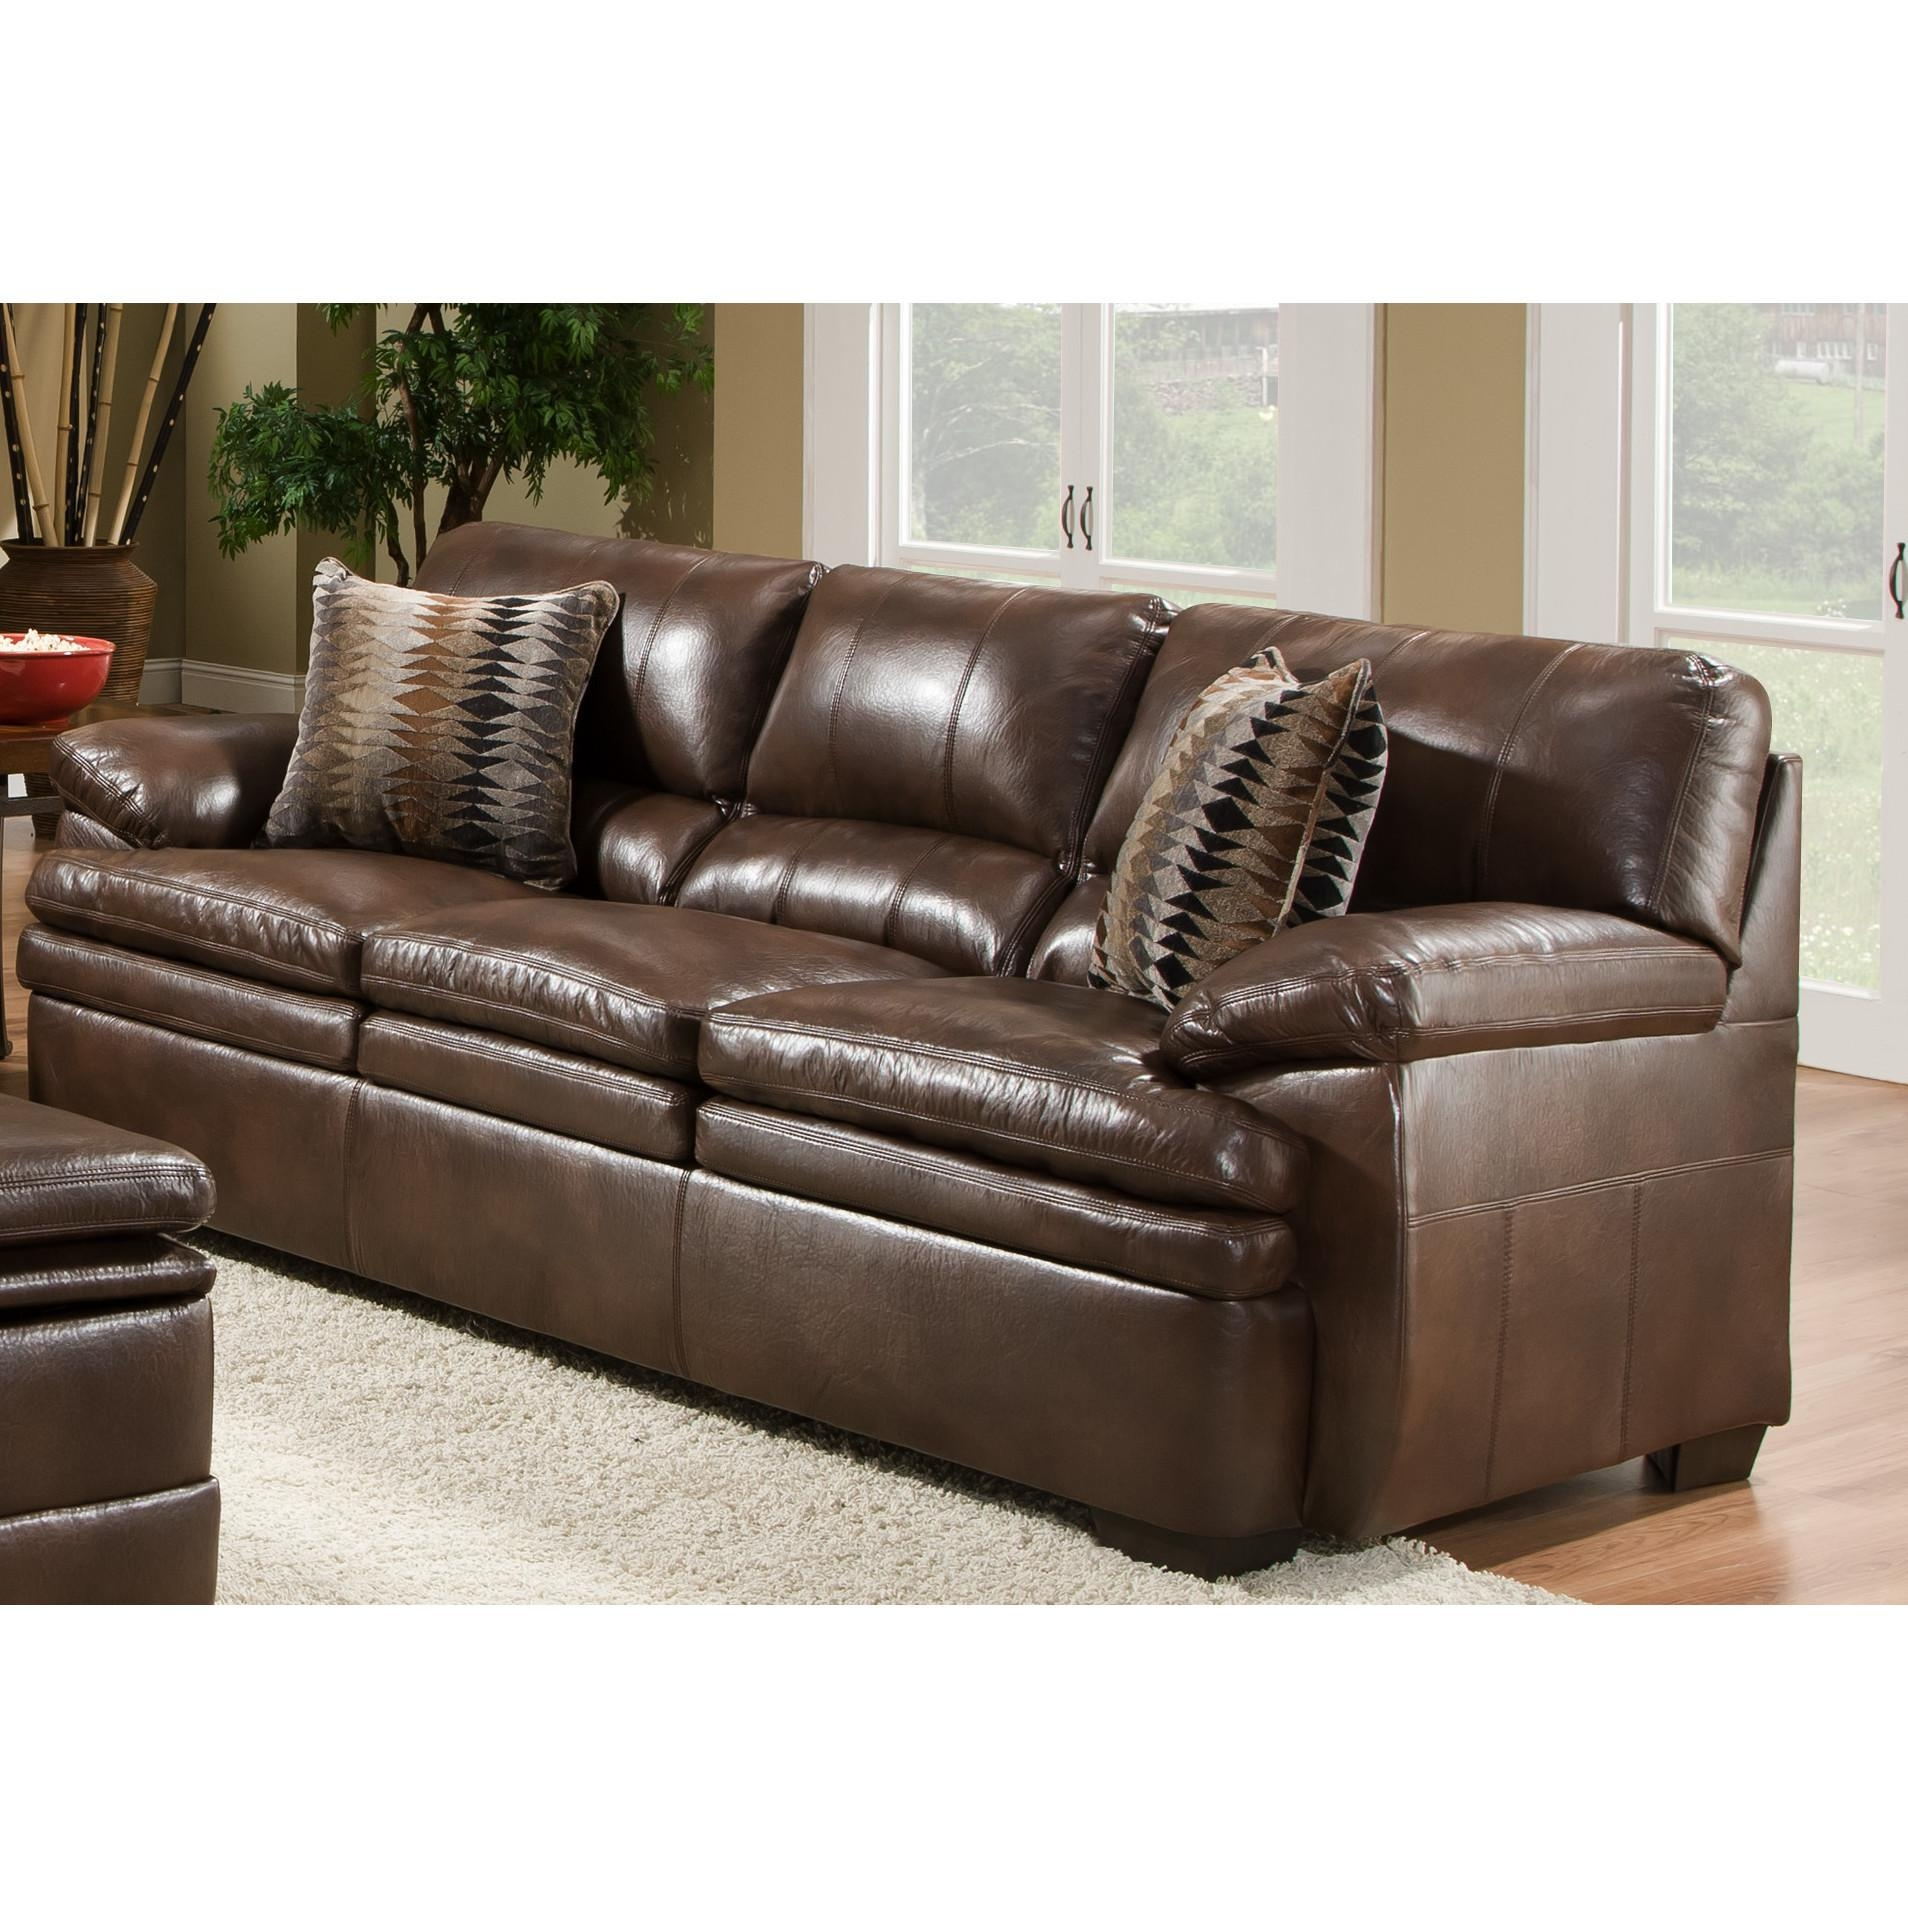 Simmons Leather Sofa | Sofa Gallery | Kengire In Simmons Leather Sofas (Image 8 of 20)